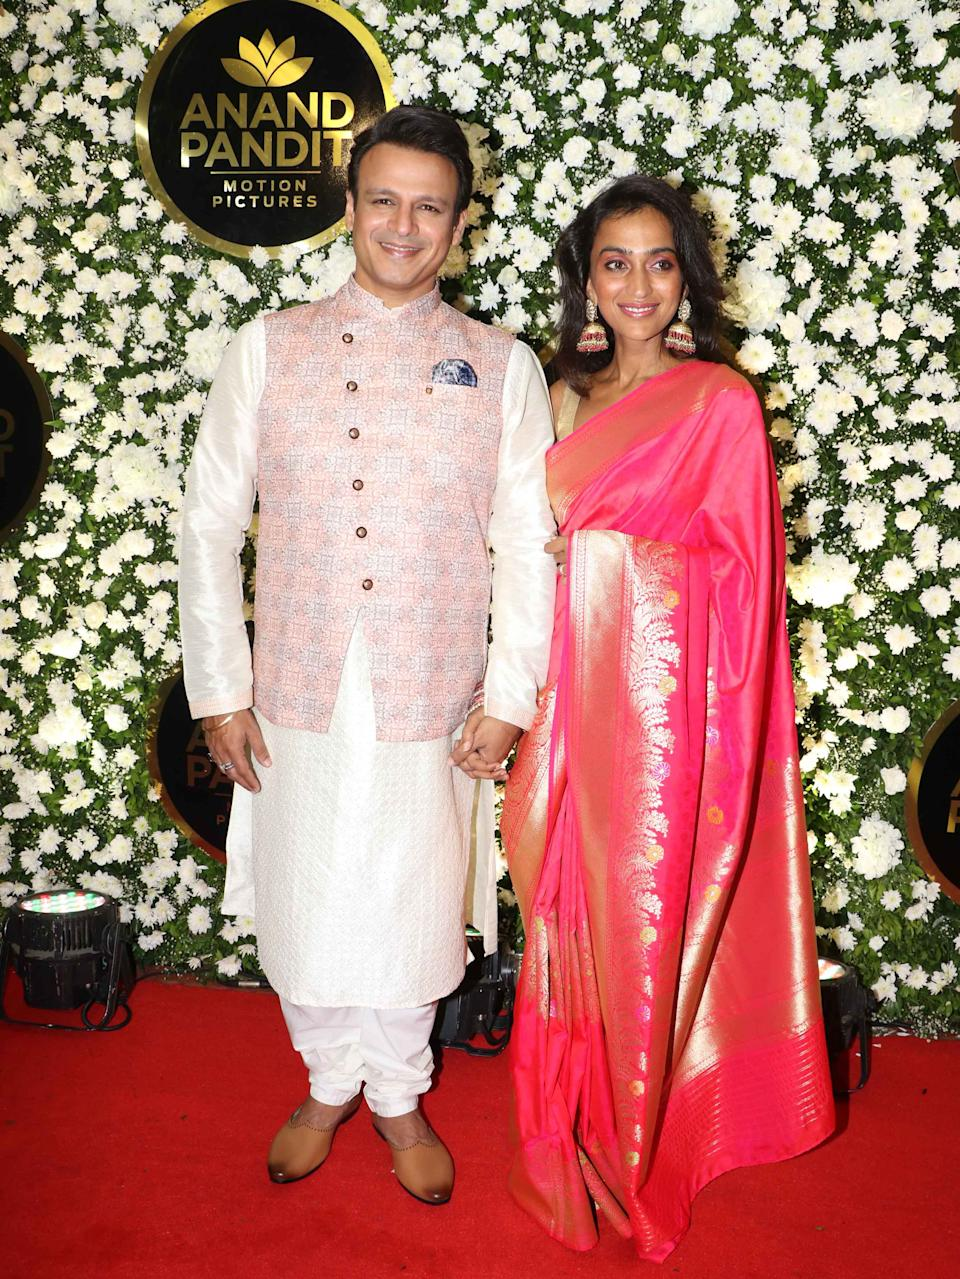 Vivek Oberoi and his wife were in their traditional best